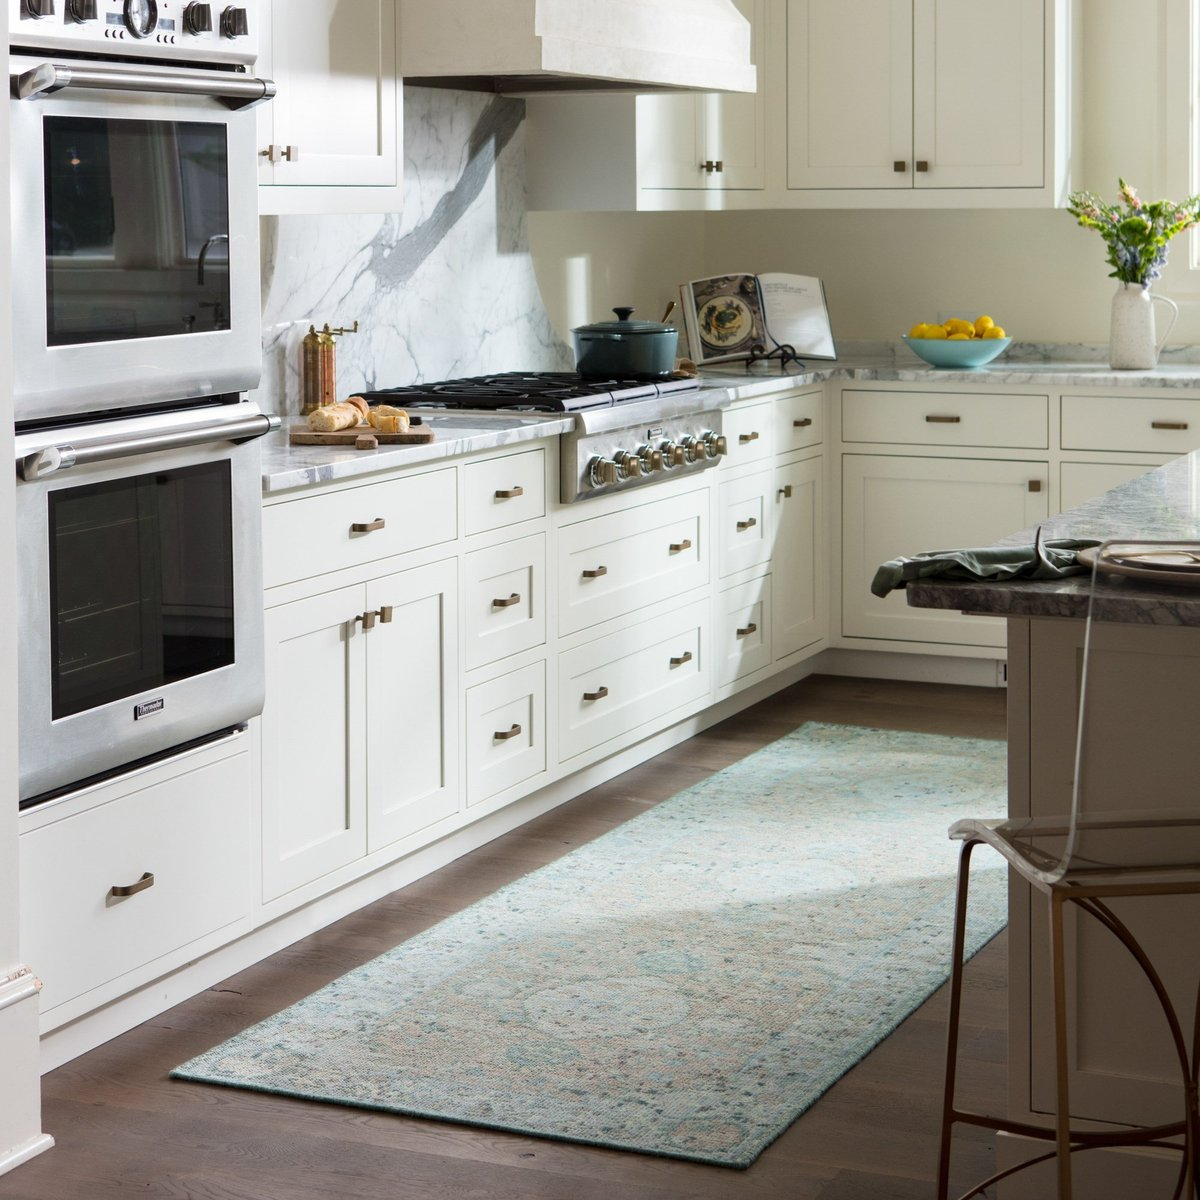 Calming Blue Rugs for the kitchen